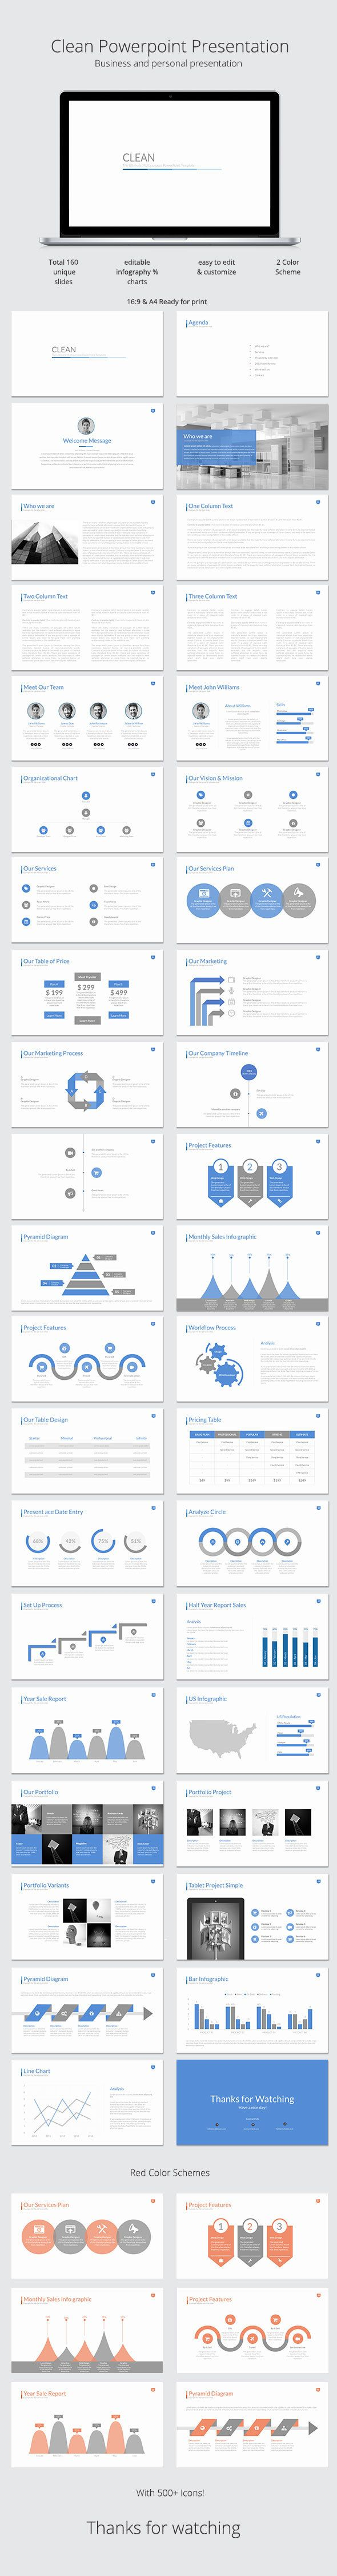 Coolmathgamesus  Prepossessing  Ideas About Powerpoint Presentations On Pinterest With Glamorous Clean Powerpoint Template With Delightful Powerpoint  Also How To Burn A Powerpoint To A Dvd In Addition Export Pdf To Powerpoint And Confined Space Training Powerpoint As Well As Life After Death By Powerpoint Additionally Pythagorean Theorem Powerpoint From Pinterestcom With Coolmathgamesus  Glamorous  Ideas About Powerpoint Presentations On Pinterest With Delightful Clean Powerpoint Template And Prepossessing Powerpoint  Also How To Burn A Powerpoint To A Dvd In Addition Export Pdf To Powerpoint From Pinterestcom